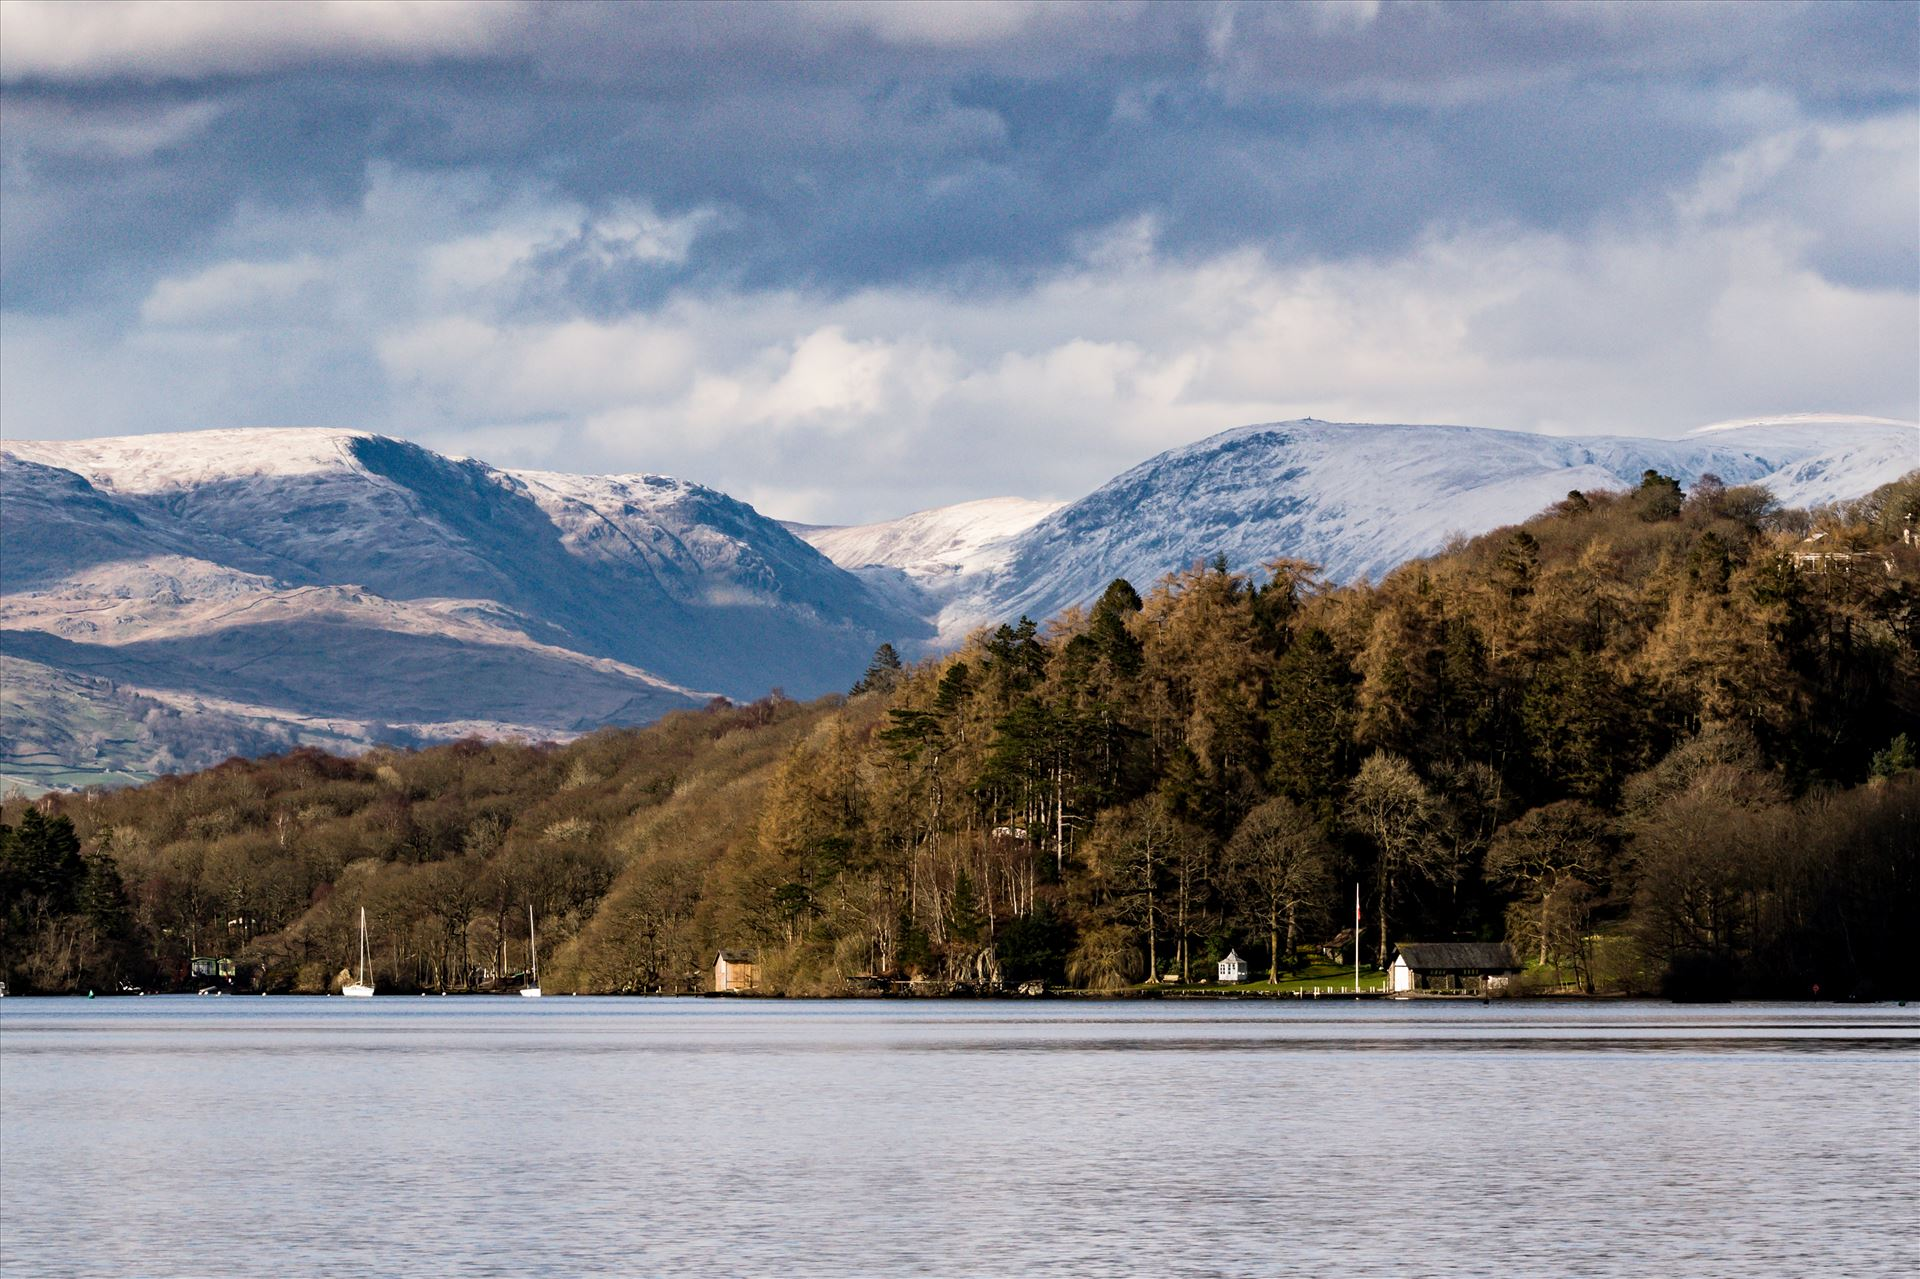 Lake Windermere Winters View - Taken from the south of the lake looking north, by AJ Stoves Photography